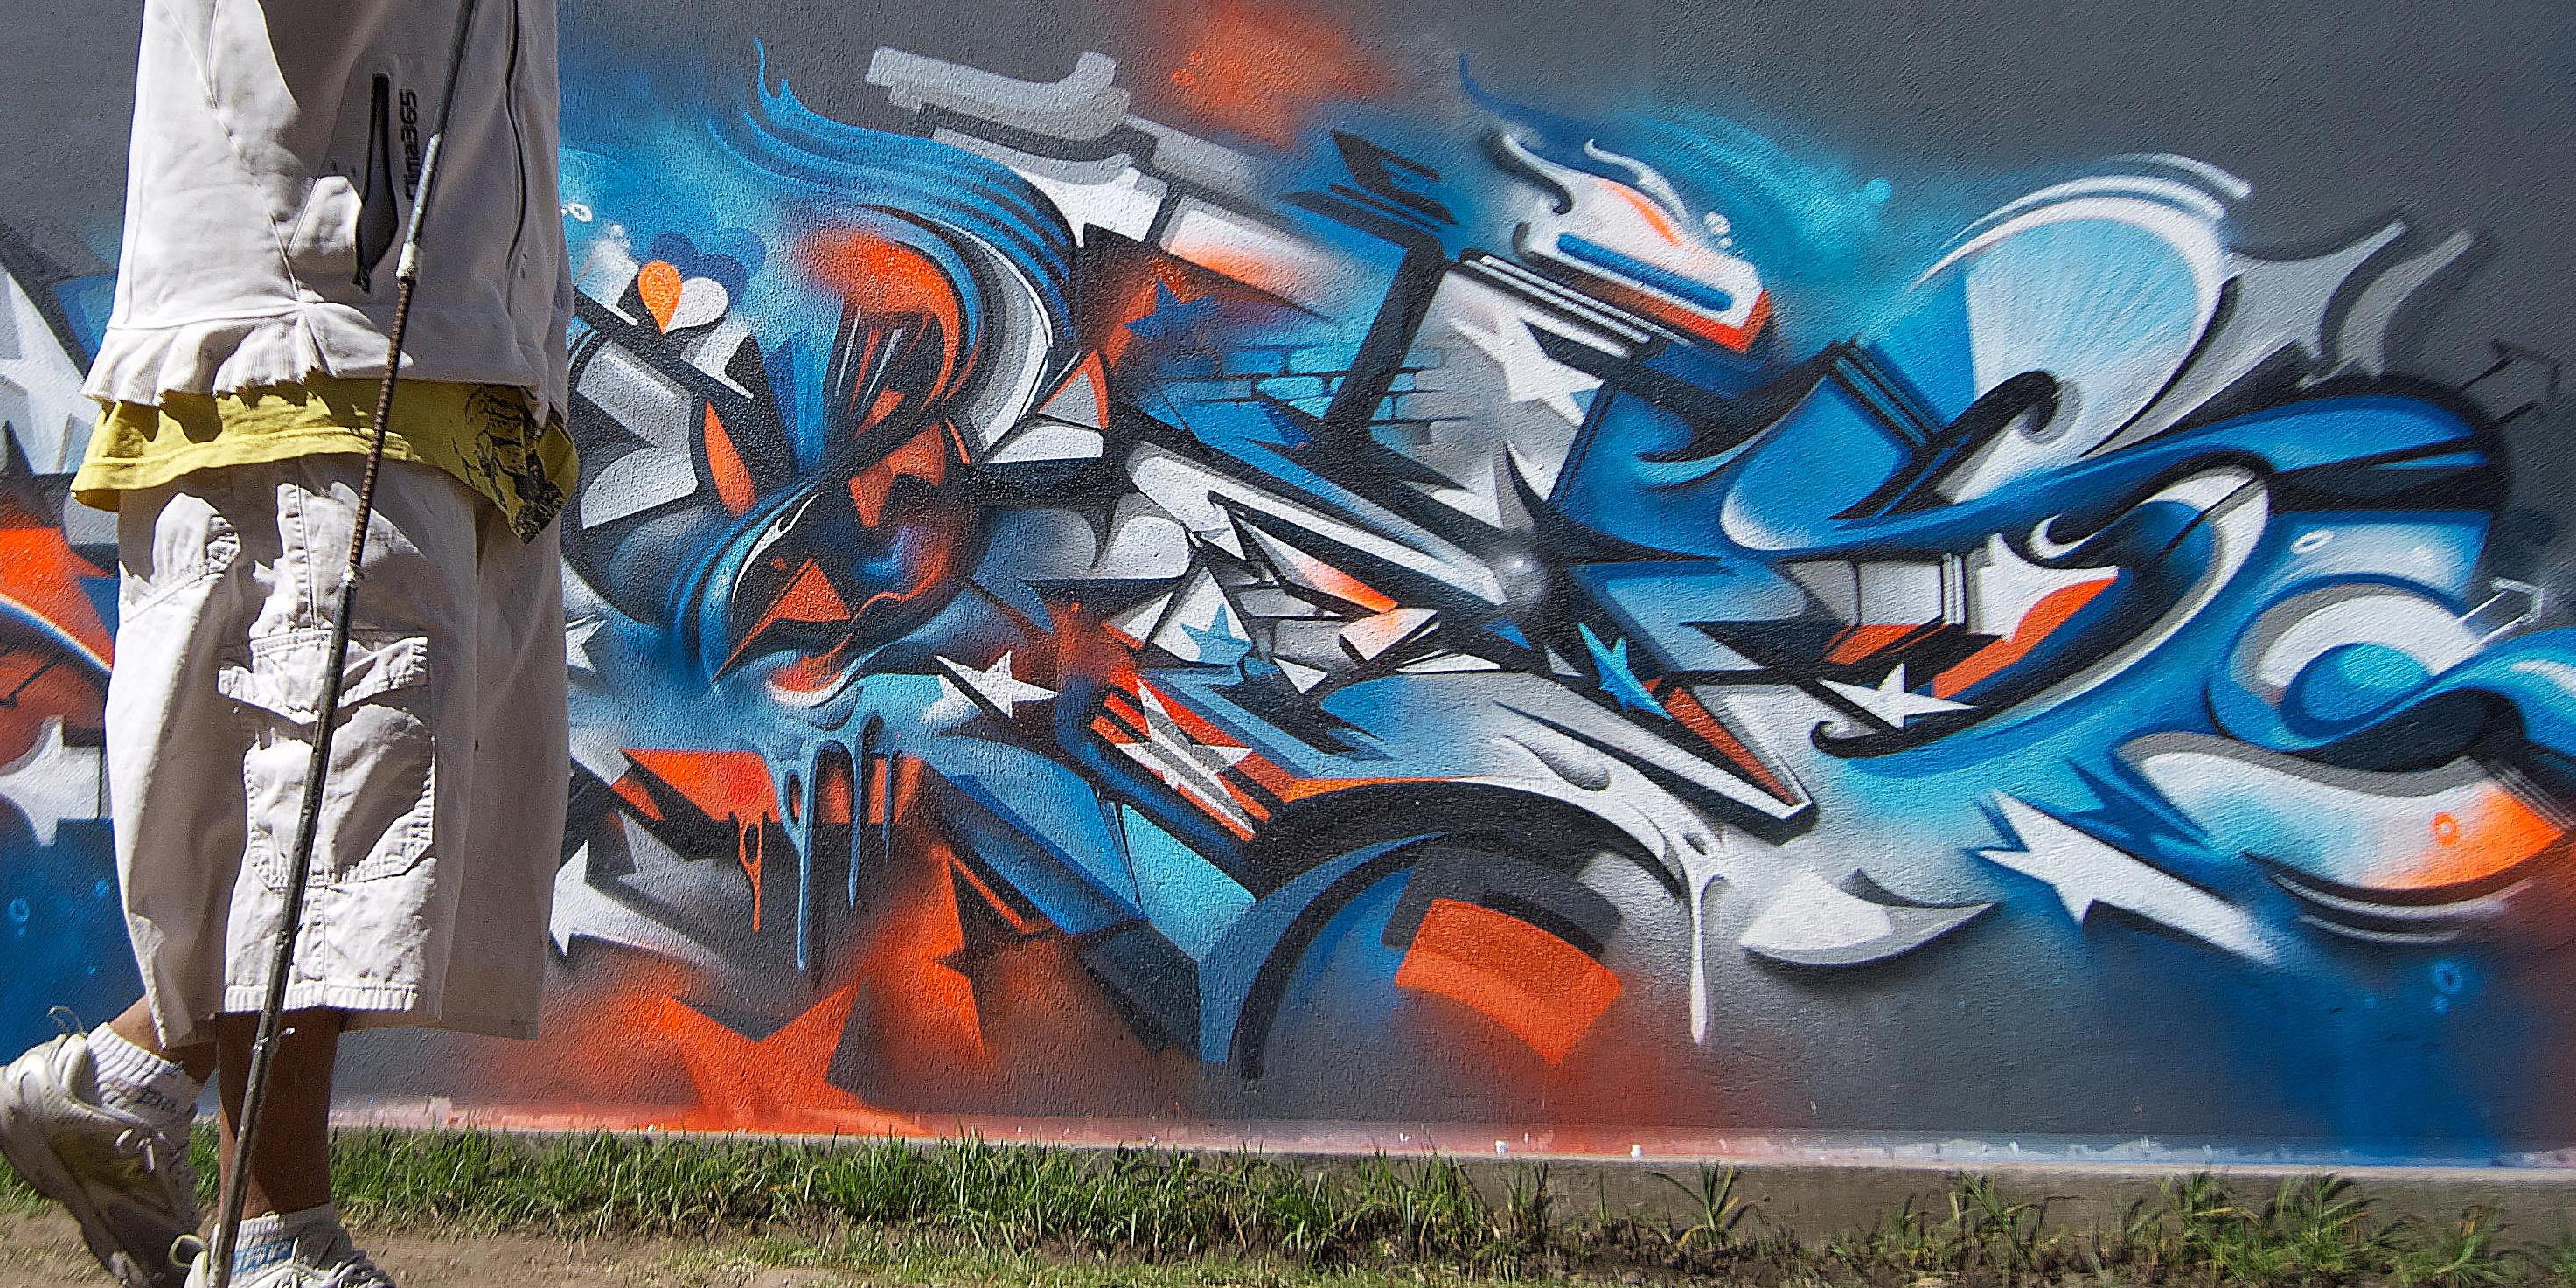 A work by Does - Quito equador